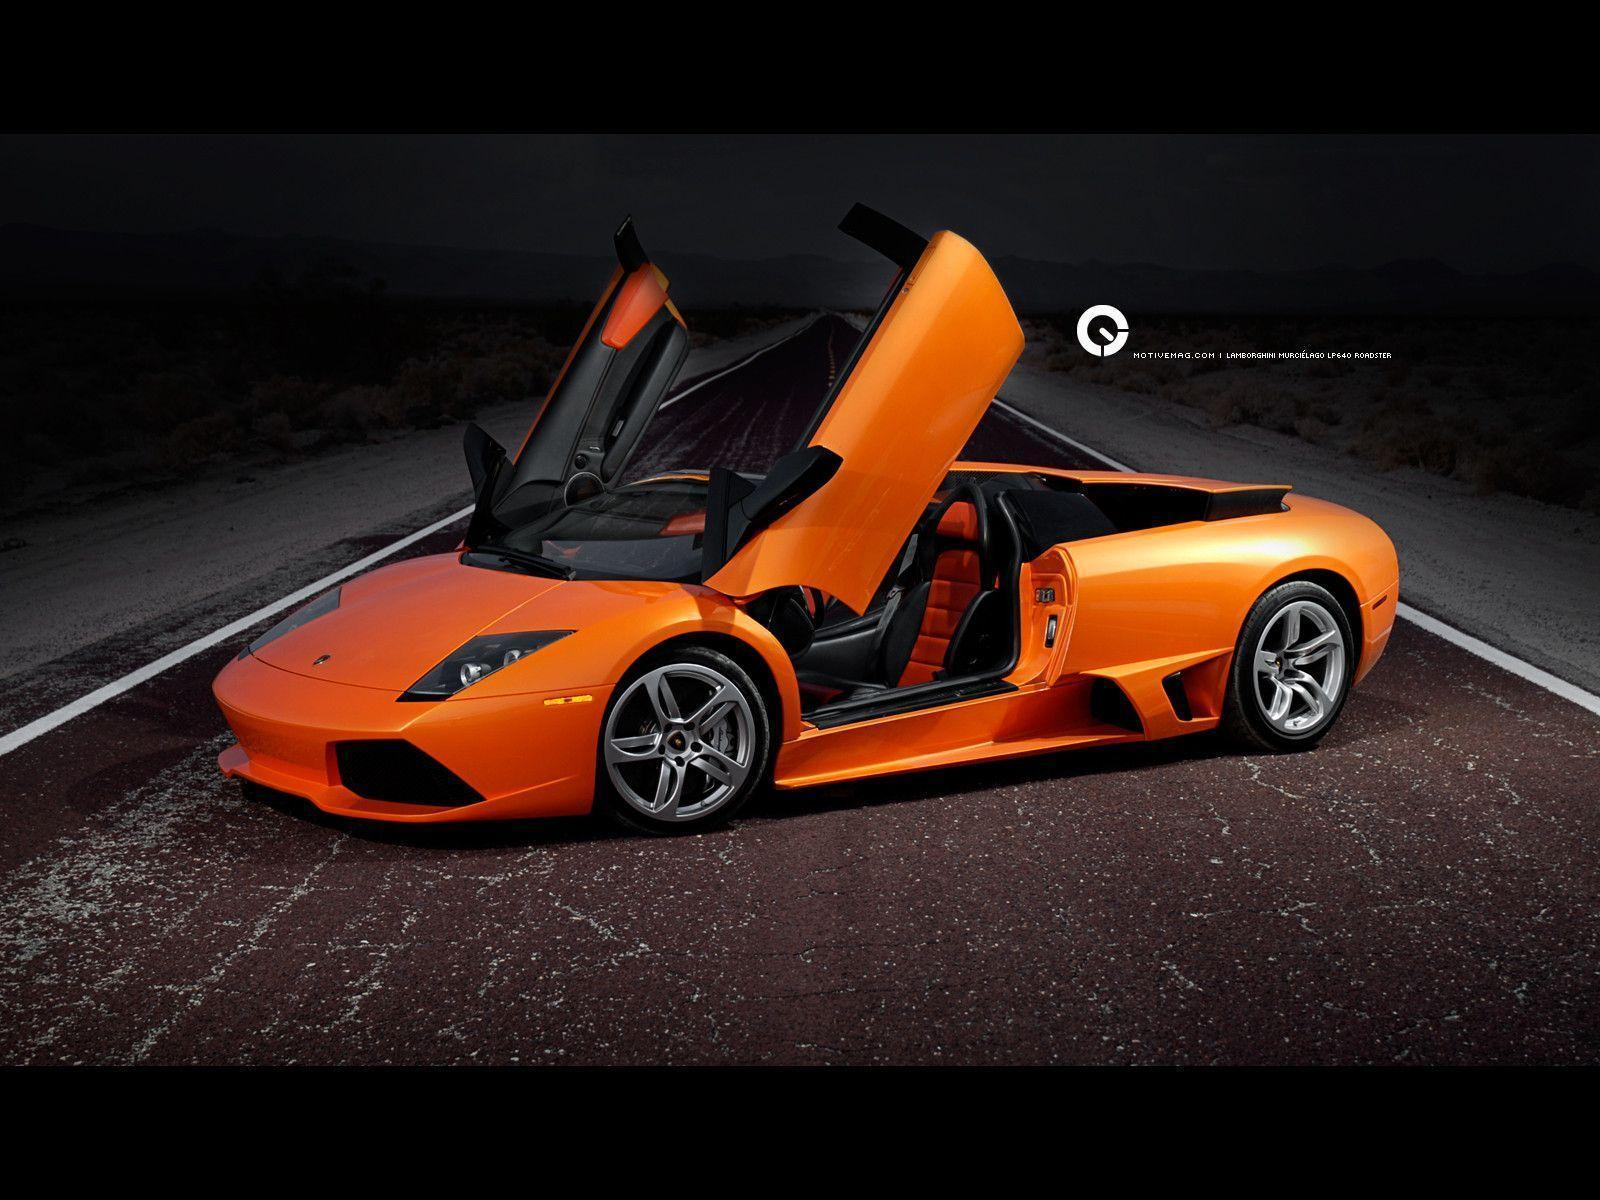 Hd lamborghini wallpaper and cool cars wallpaper hd in our site